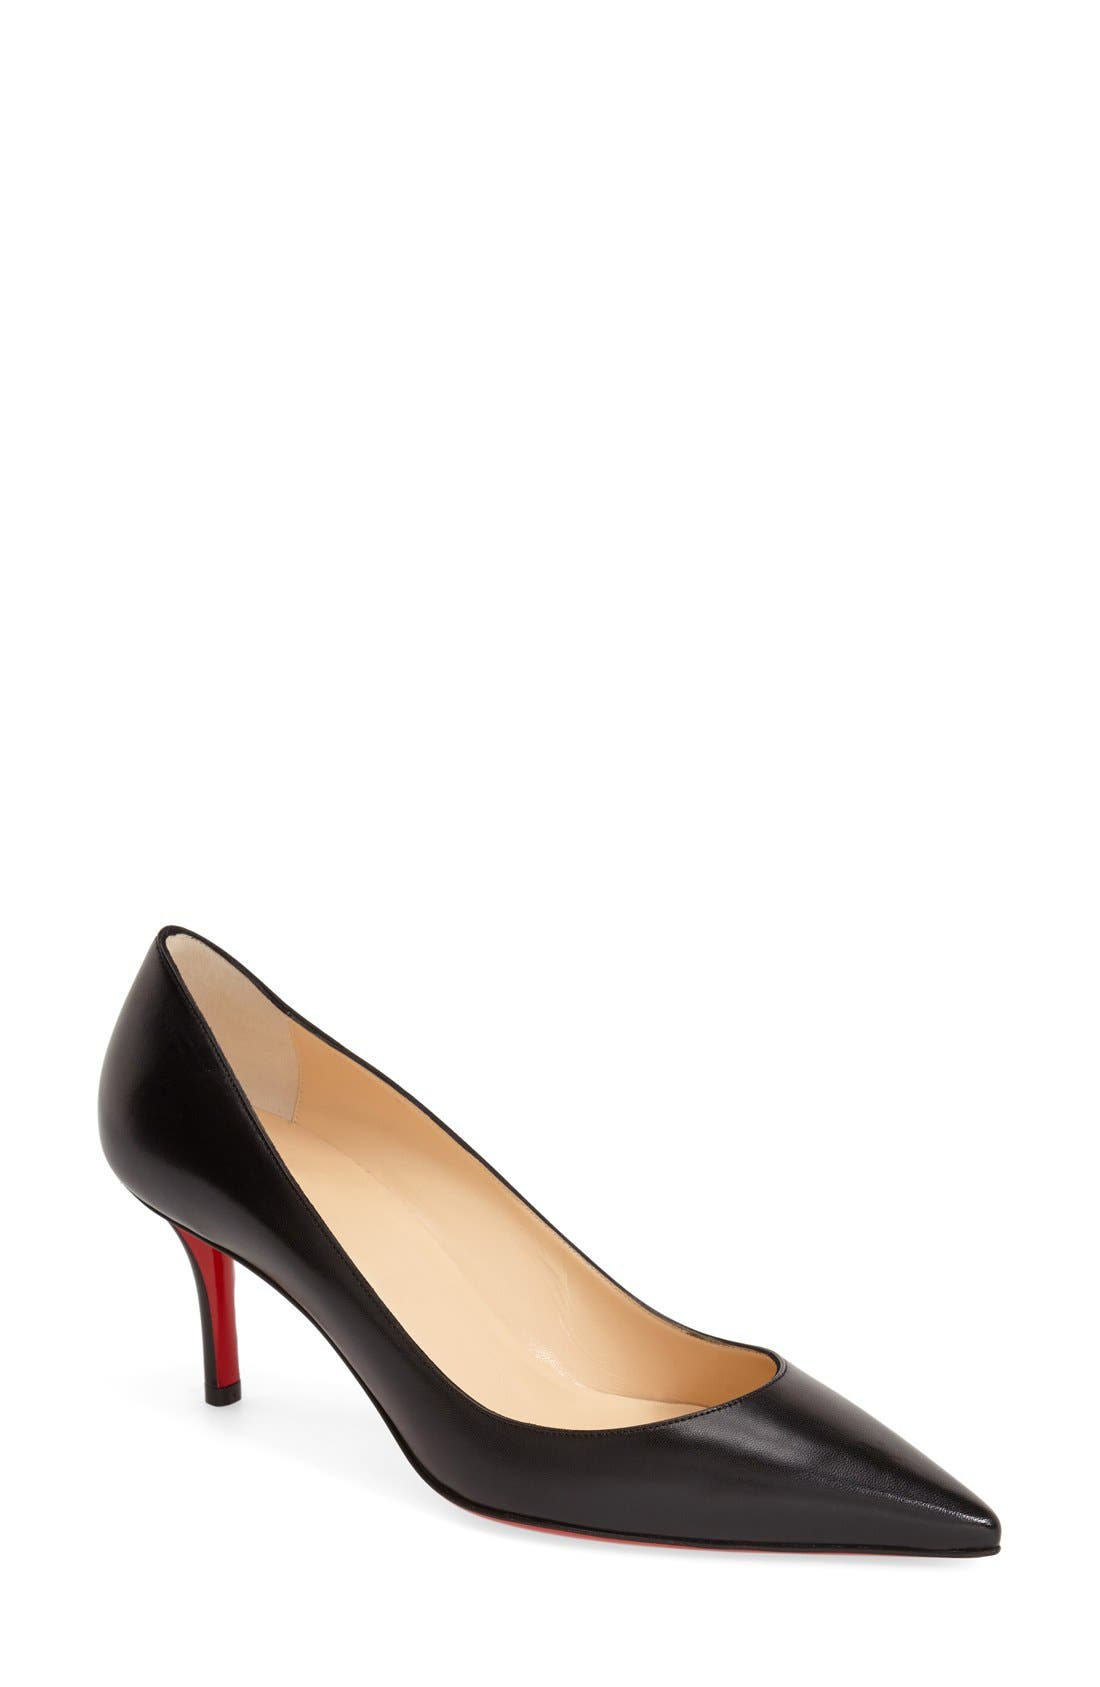 'Apostrophy' Pointy Toe Pump, Main, color, 001